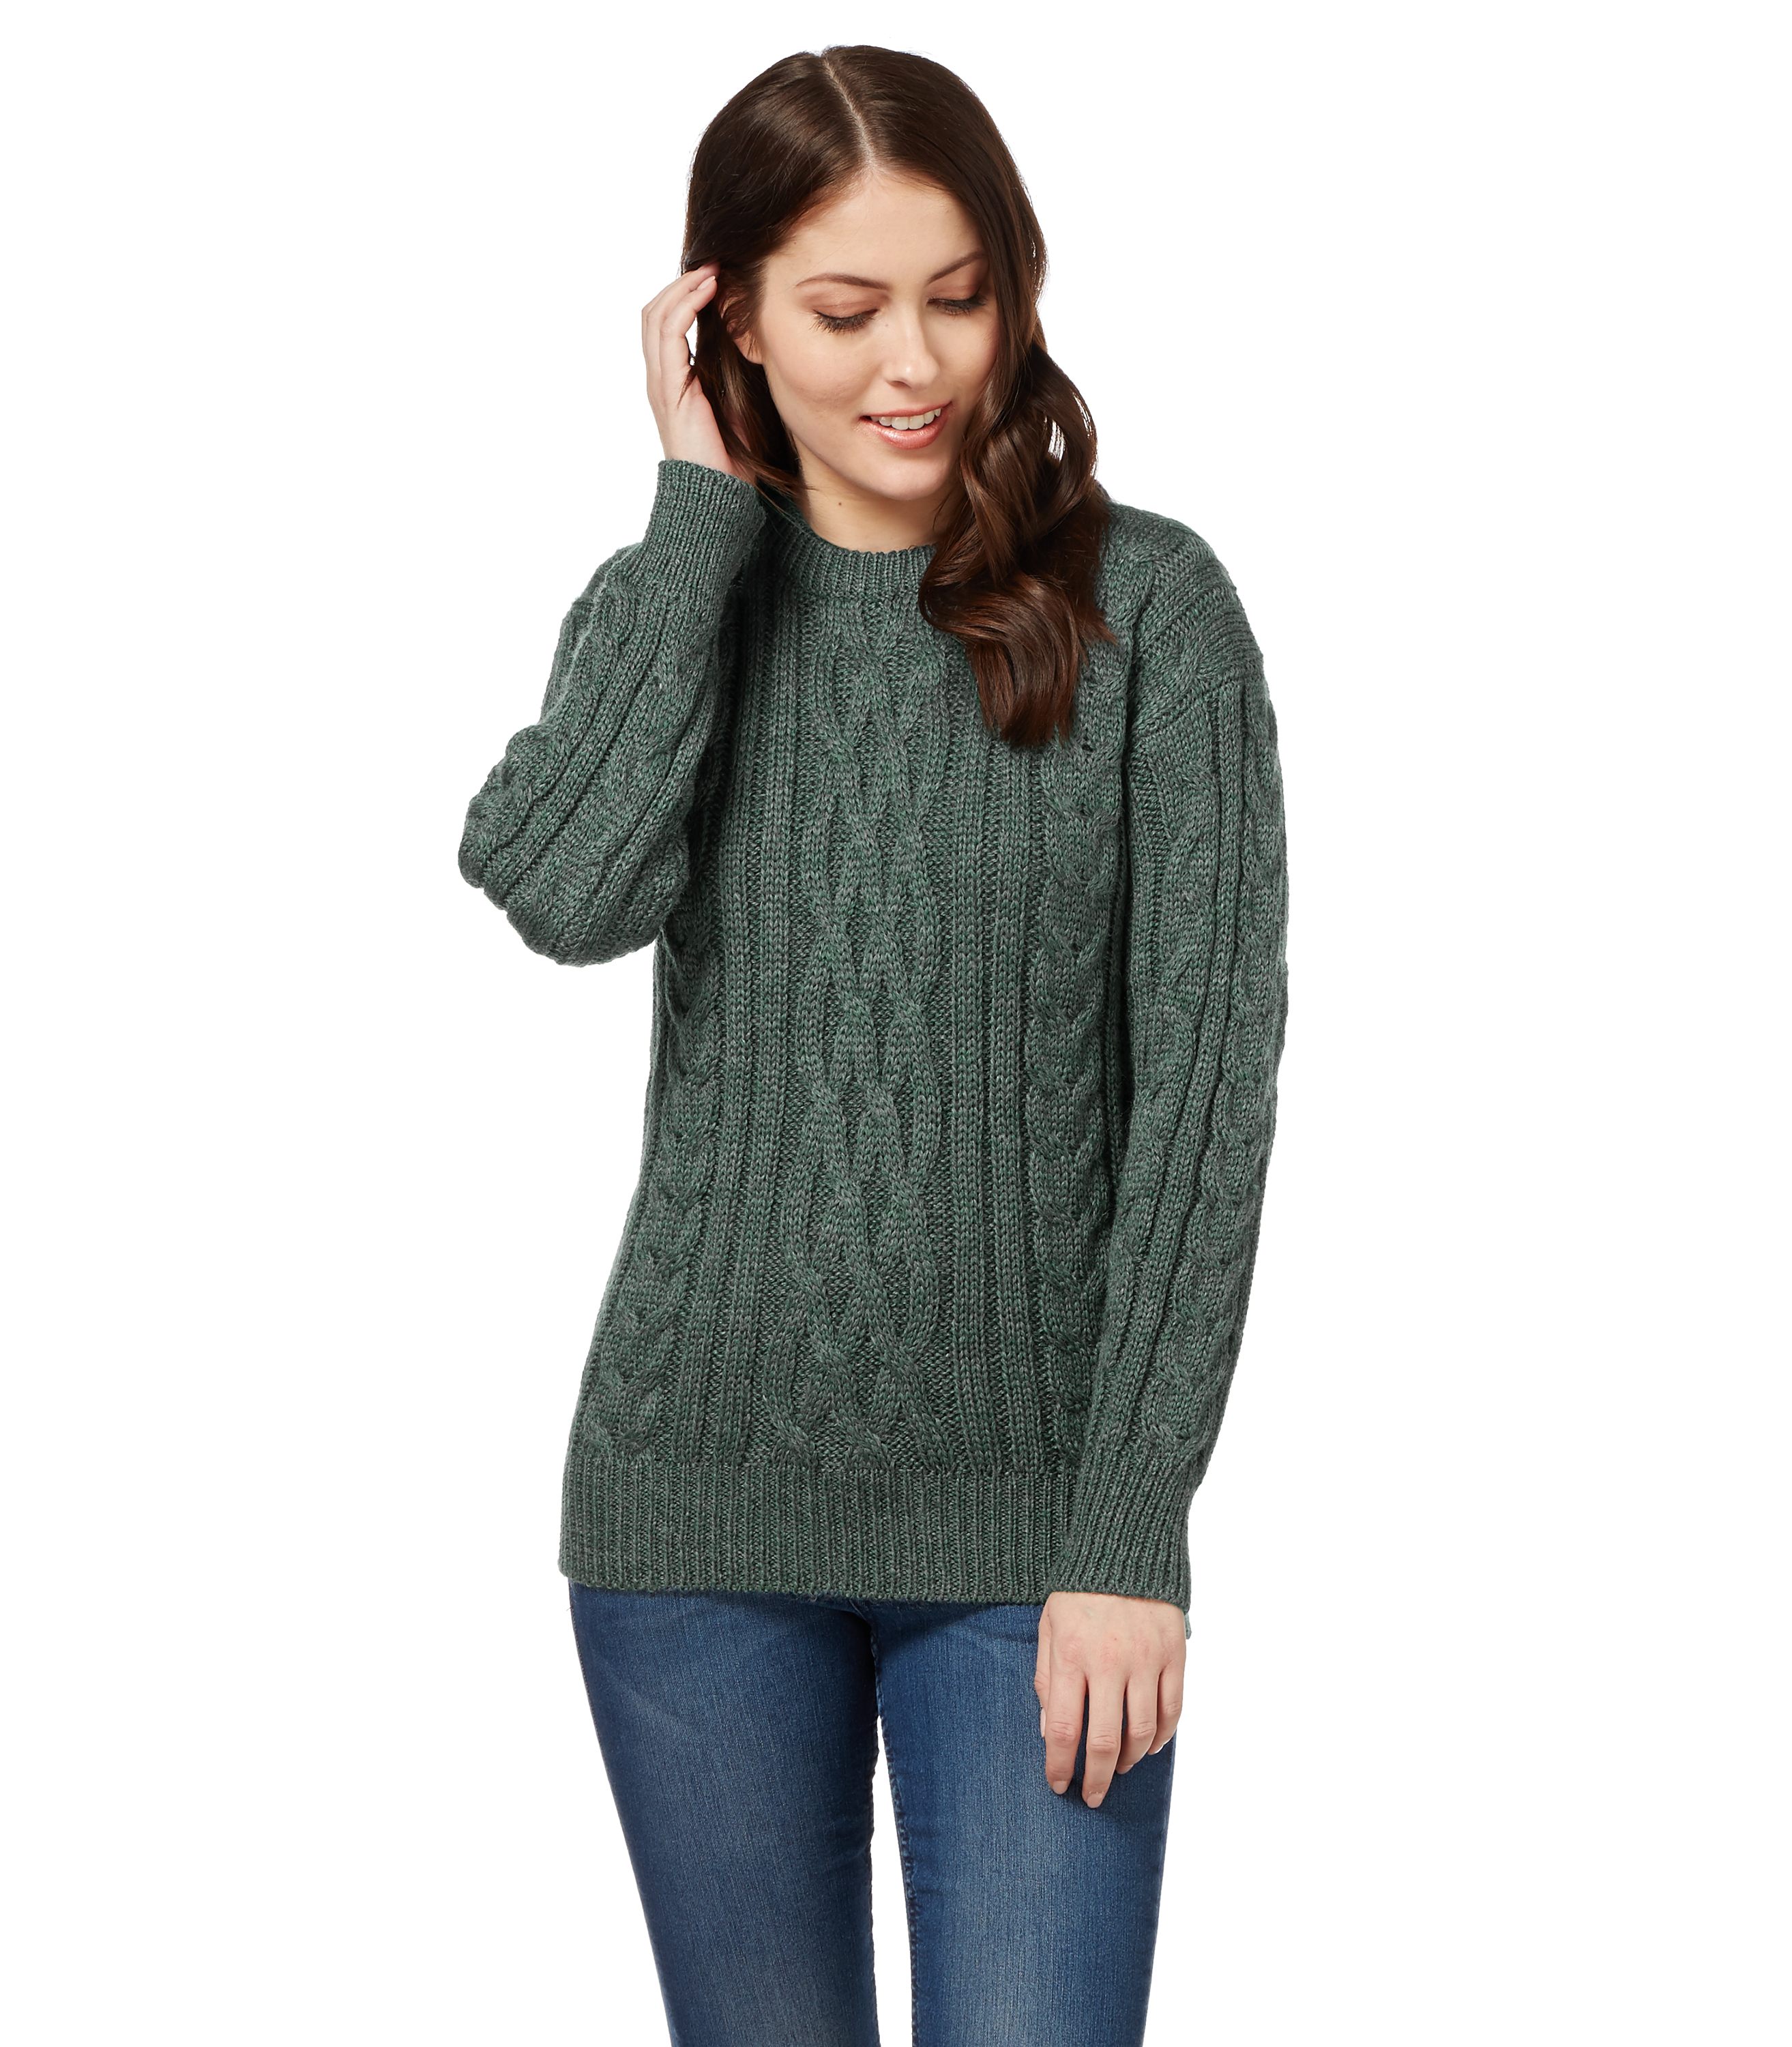 Womens pullovers and cardigans. Traditional and contemporary wool sweaters hand knitted by Icelandic Housewives. The hand knit wool sweaters and wool cardigans are excellent examples of Icelandic knitwear.